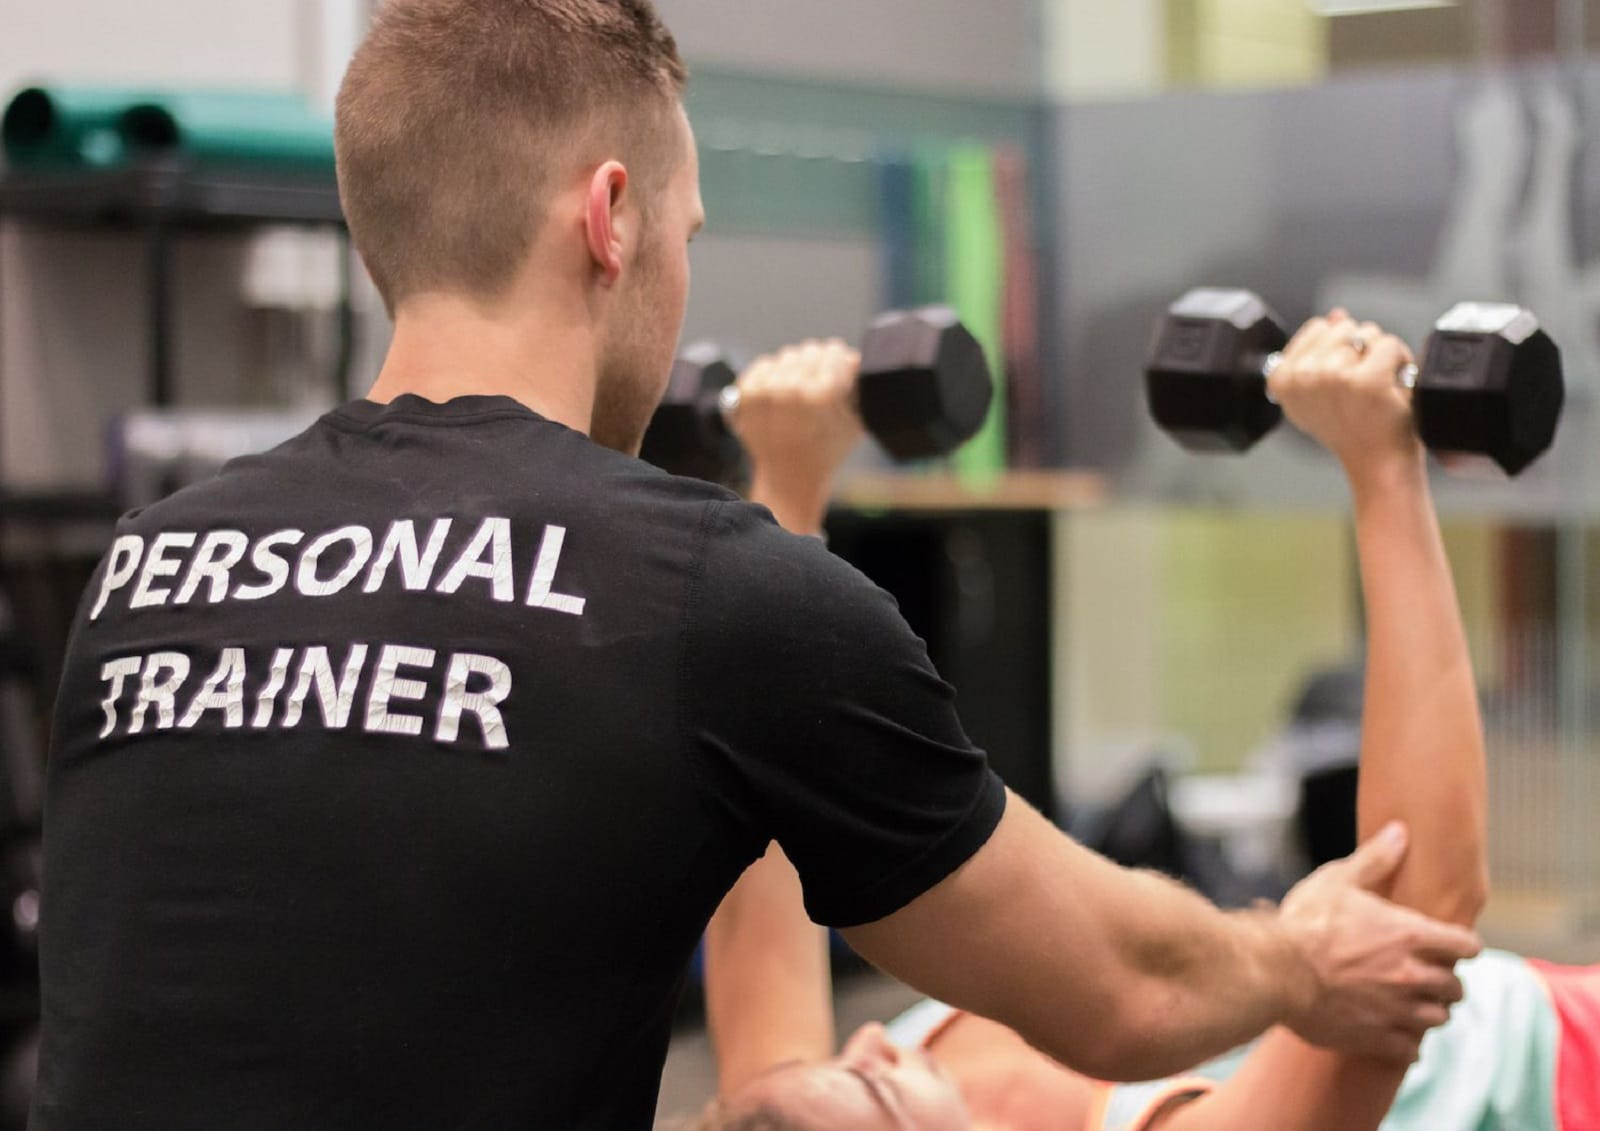 personal trainer works with client